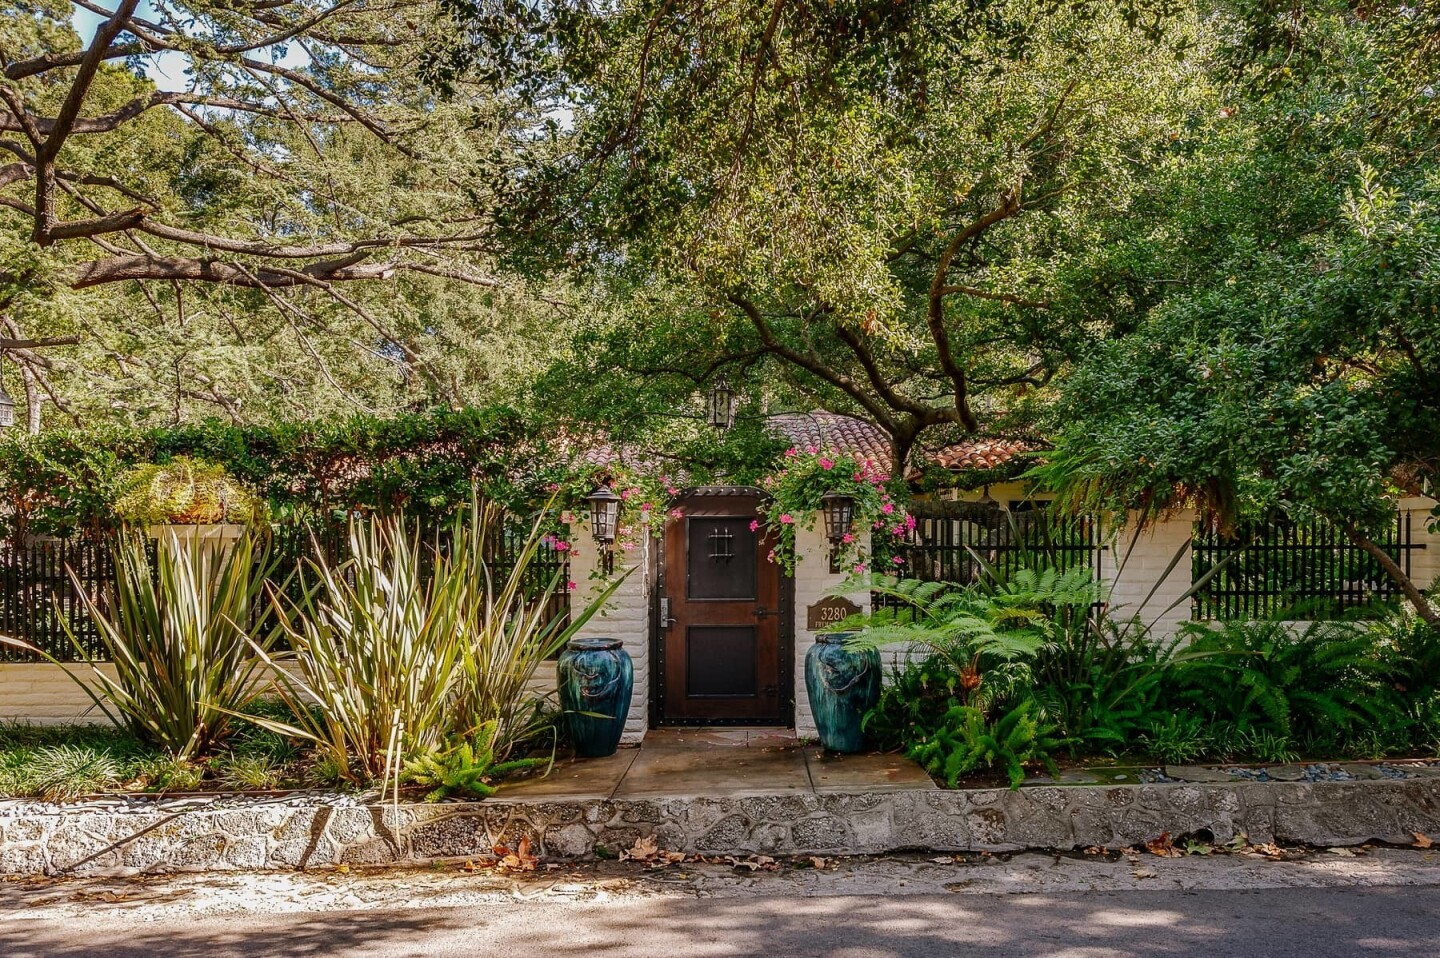 Drew Barrymore and Tom Green's onetime home   Hot Property